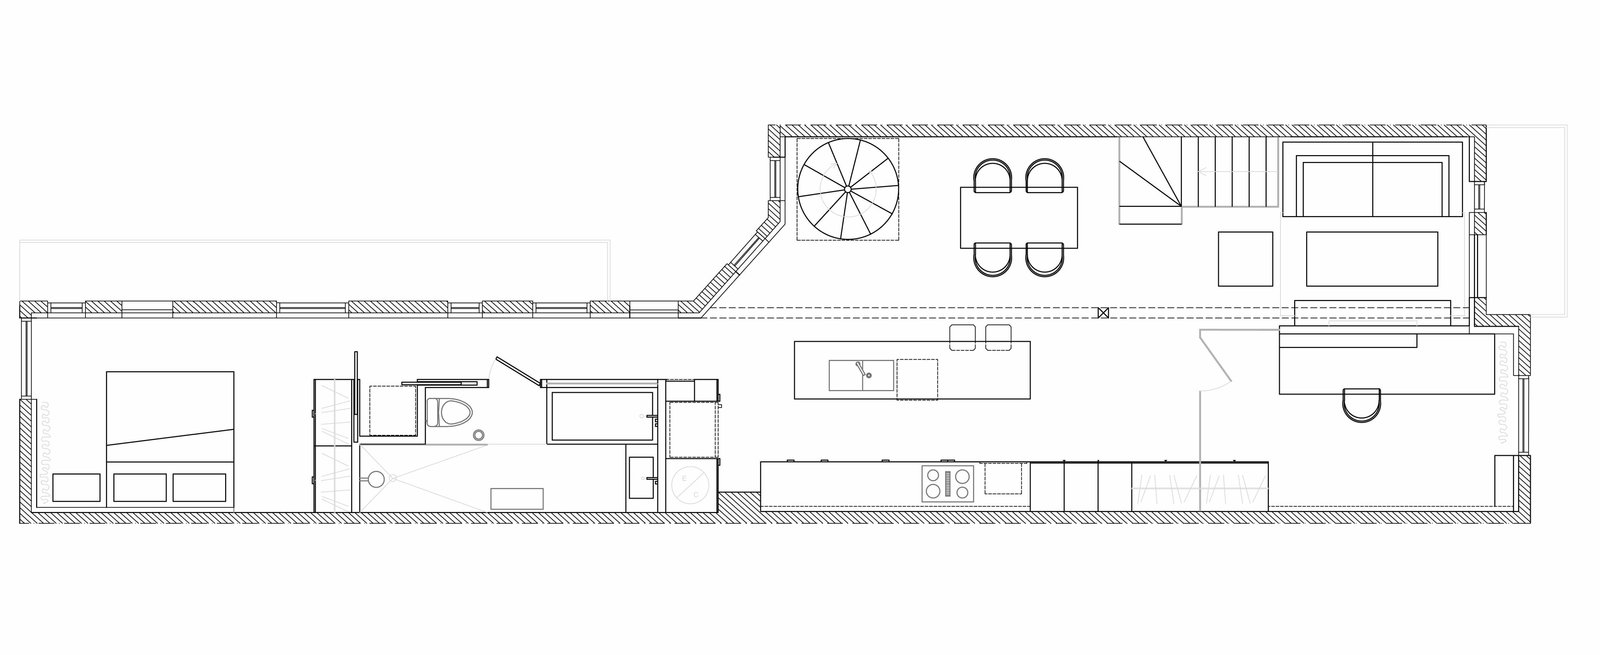 Floor Plan of Espace Panet.   Photo 11 of 12 in A 1910 Apartment Transforms Into an Open, Radiant Loft